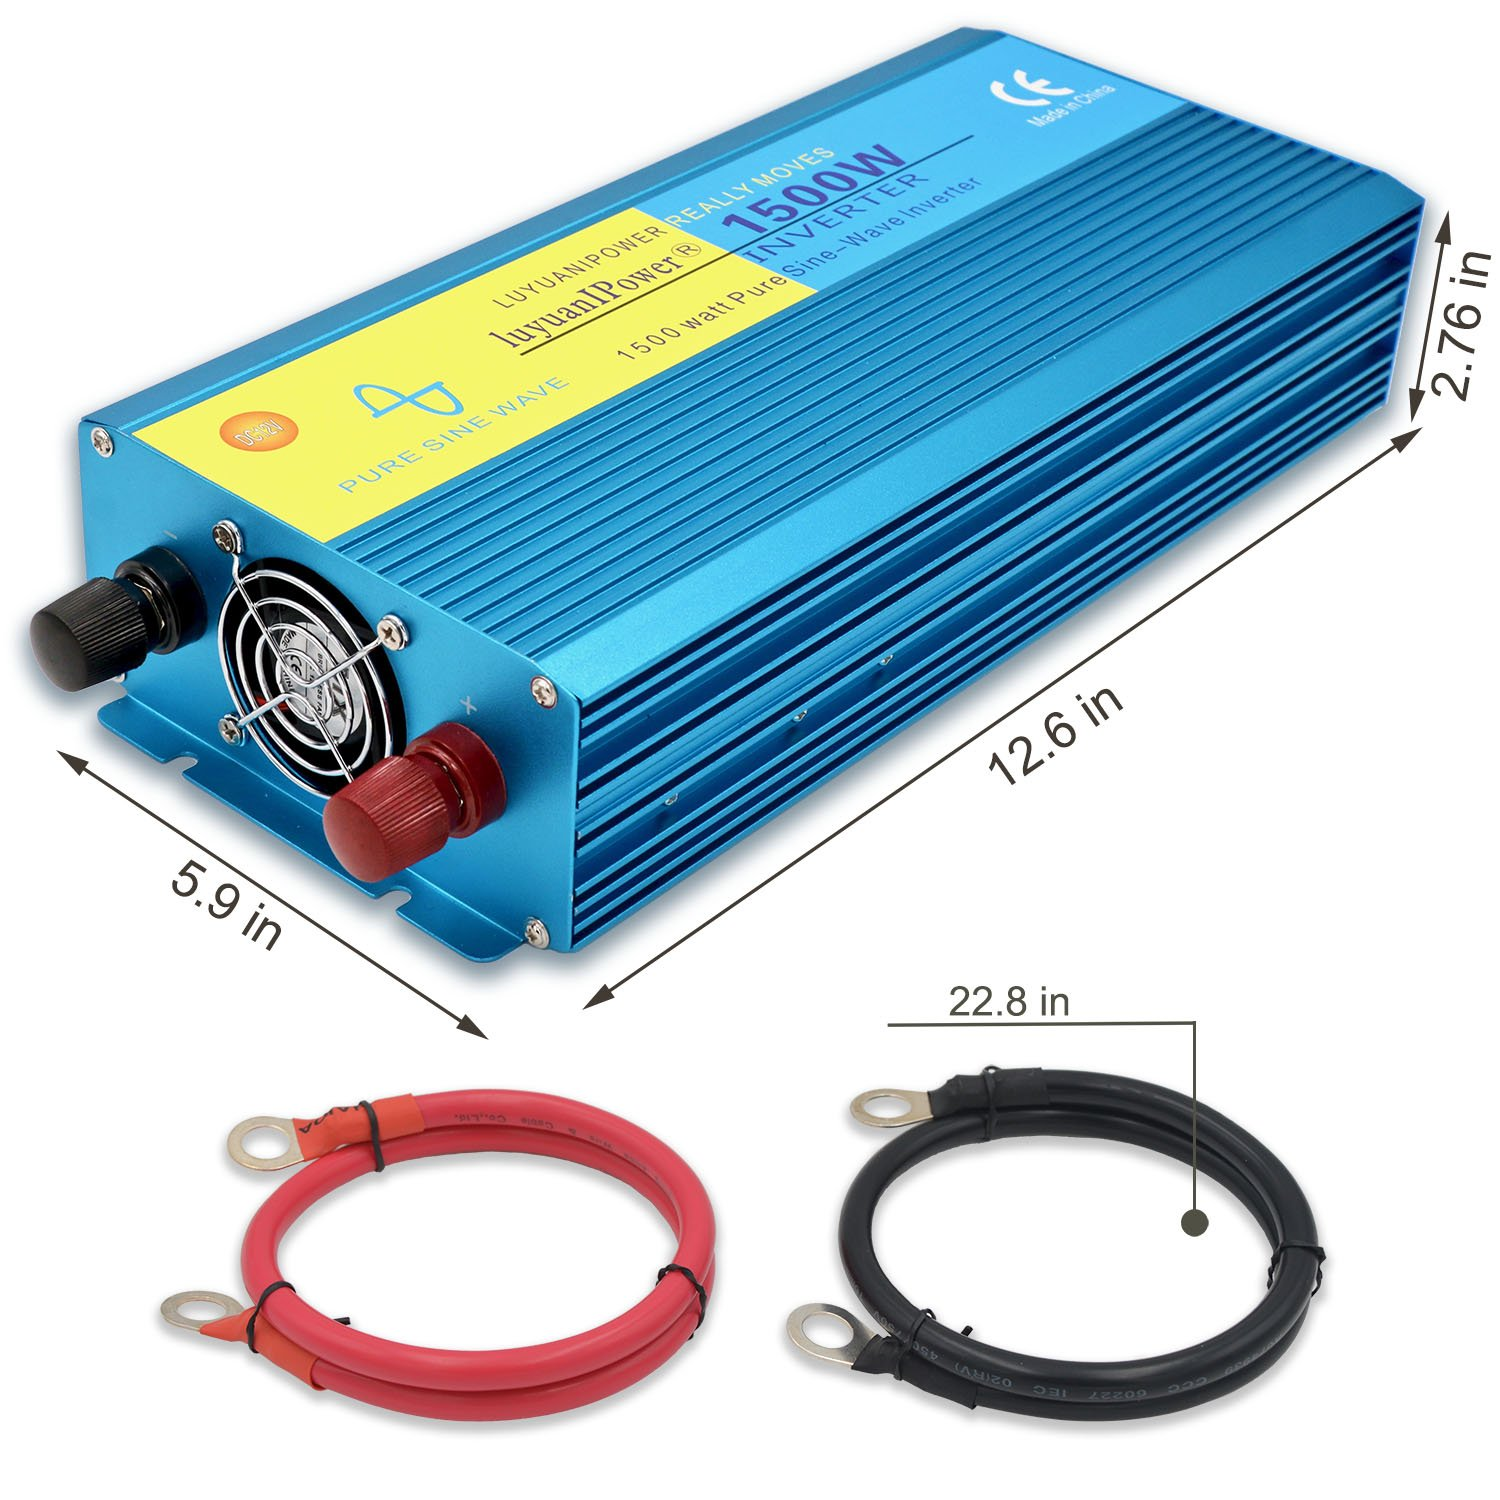 Cantonape 1500w Pure Sine Wave Power Inverter 3000w Peak 500w Mosfet From 12v To 110v 220v Converter Dc Ac Lcd Display Dual Outlets Car Boat Truck Rv Solar